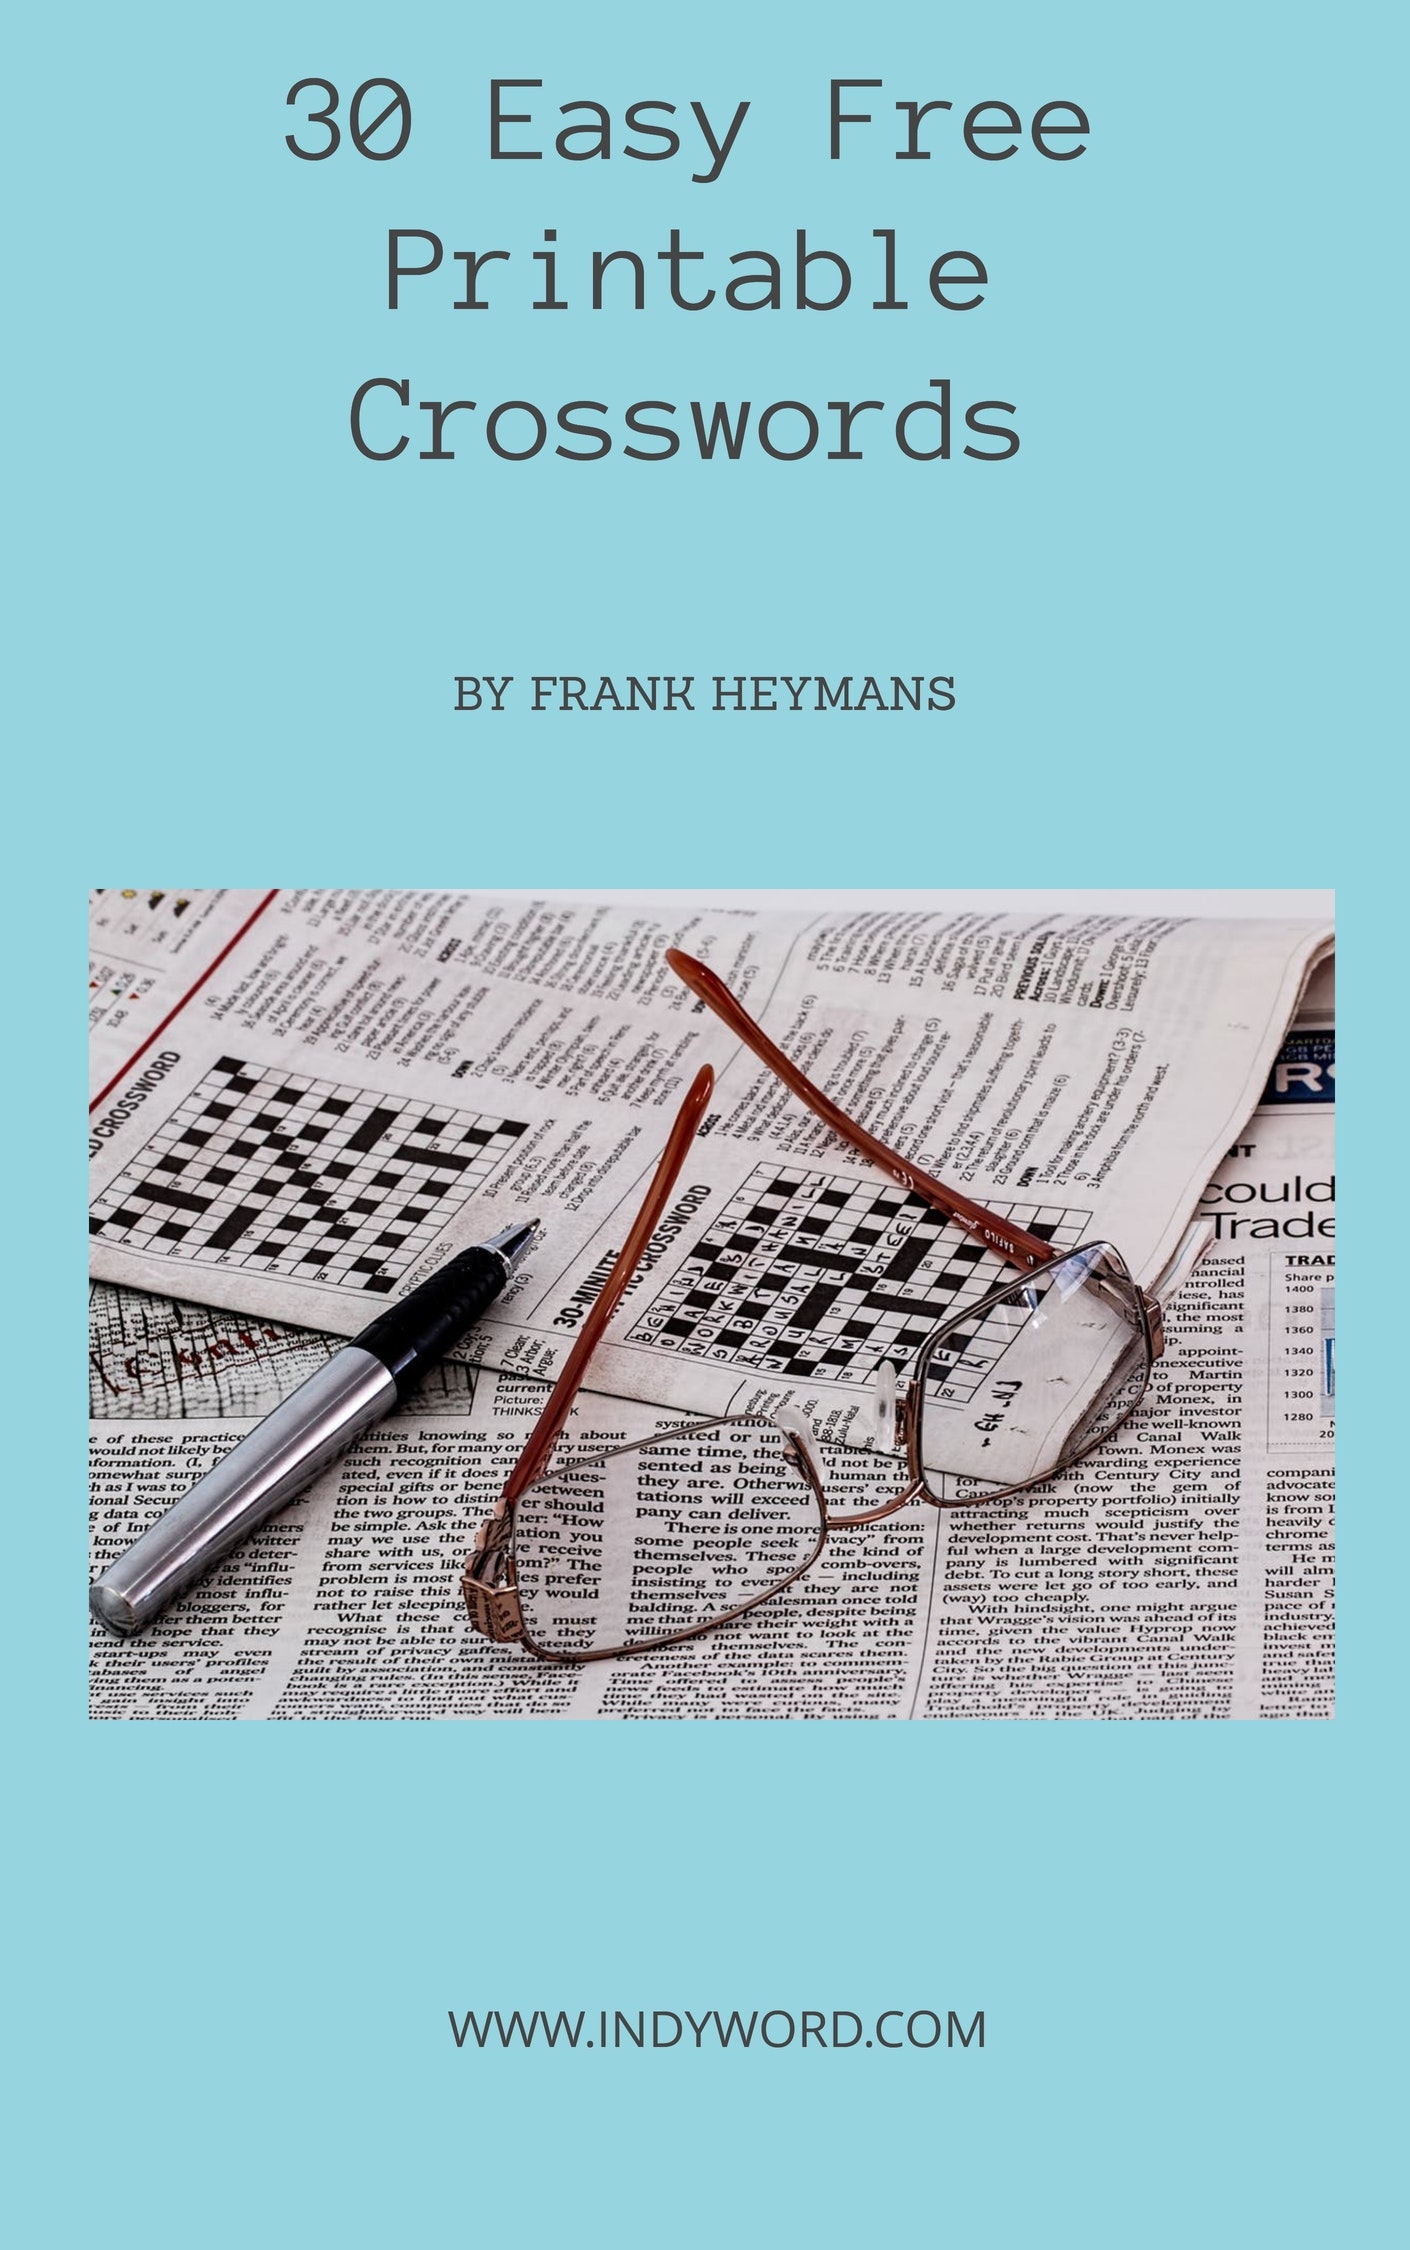 Easy Crossword Puzzles Printable - Find Free Printable Crossword Puzzles